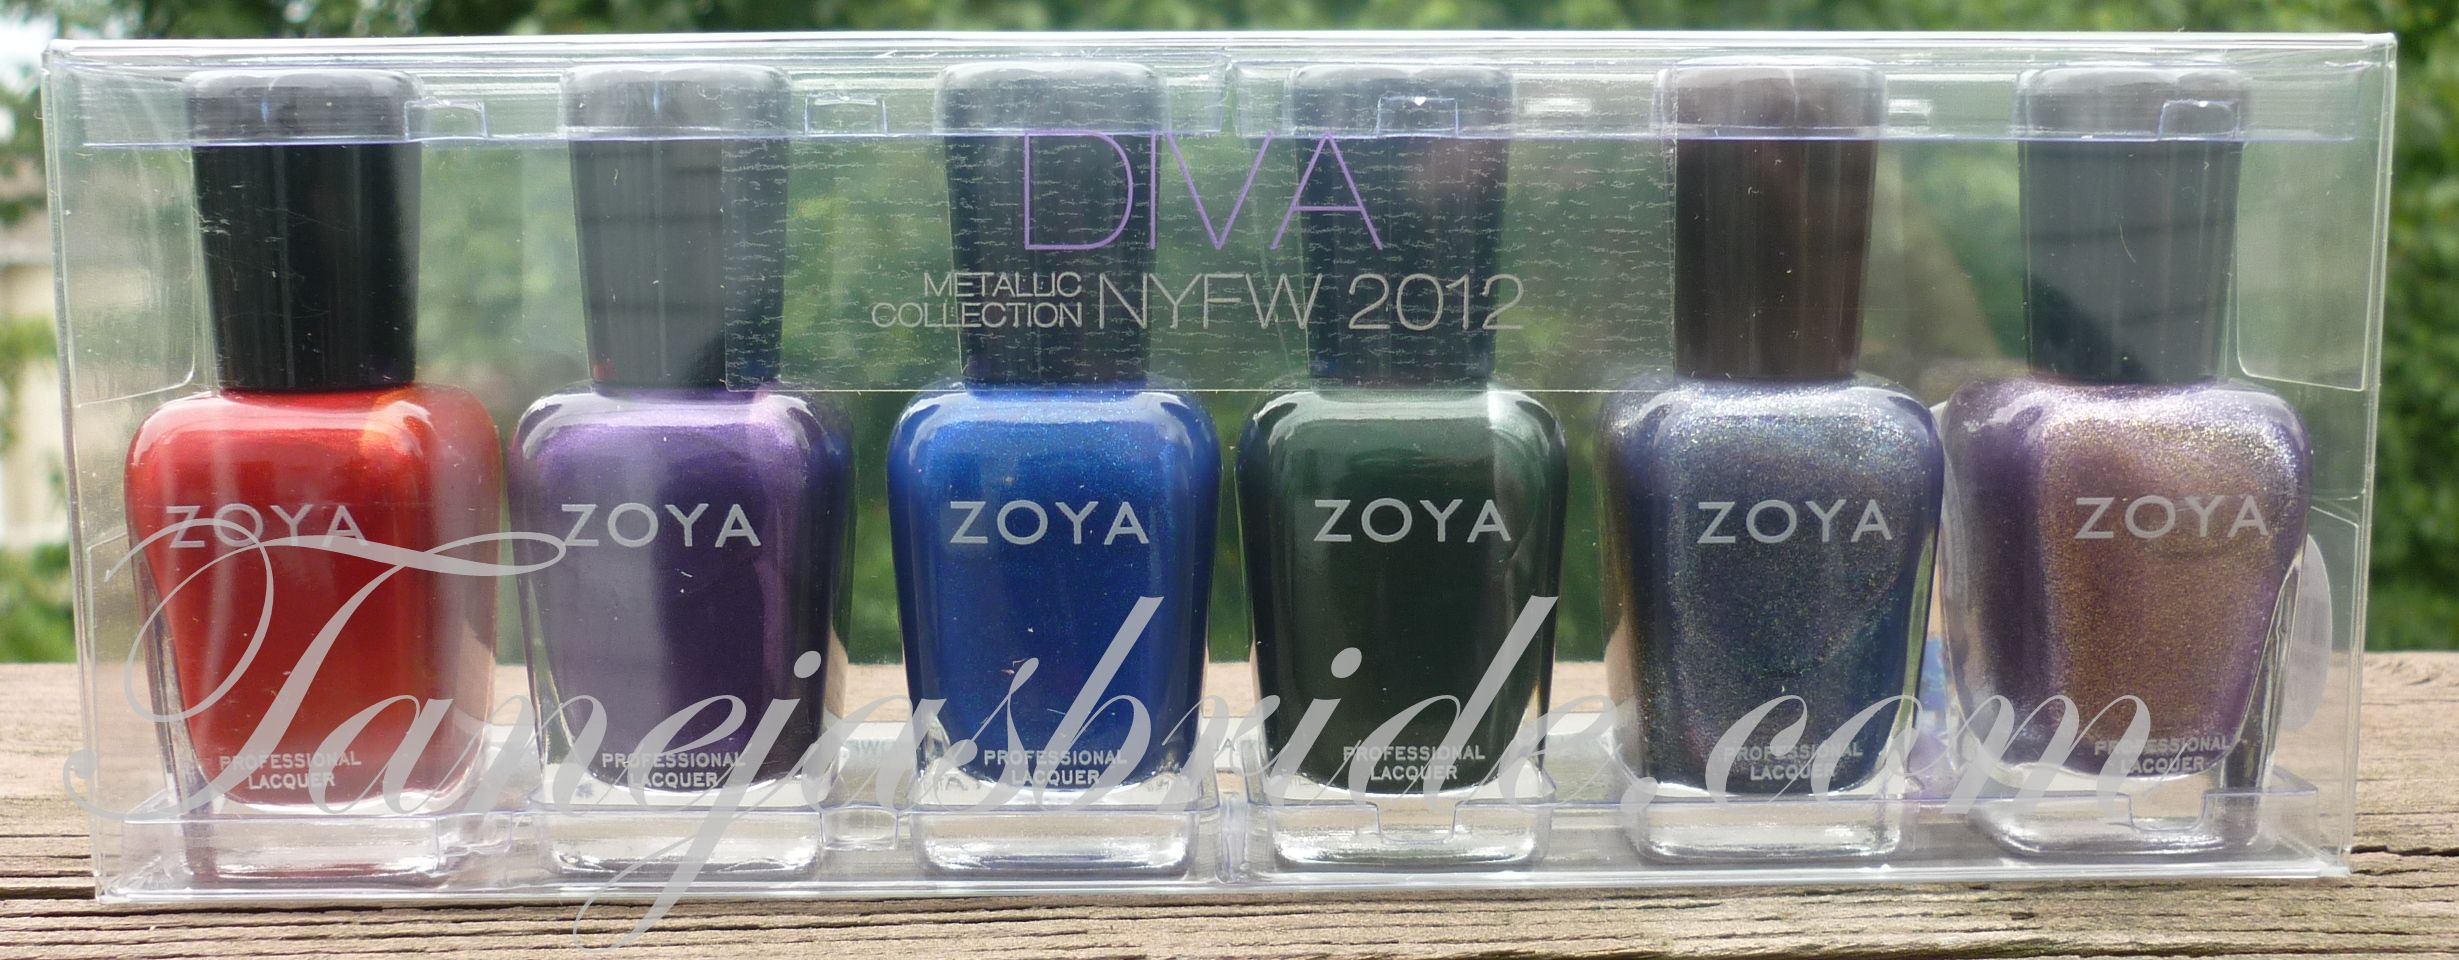 Zoya Diva Collection: http://tanejasbride.com/2012/07/12/zoya-diva-collection-2012/